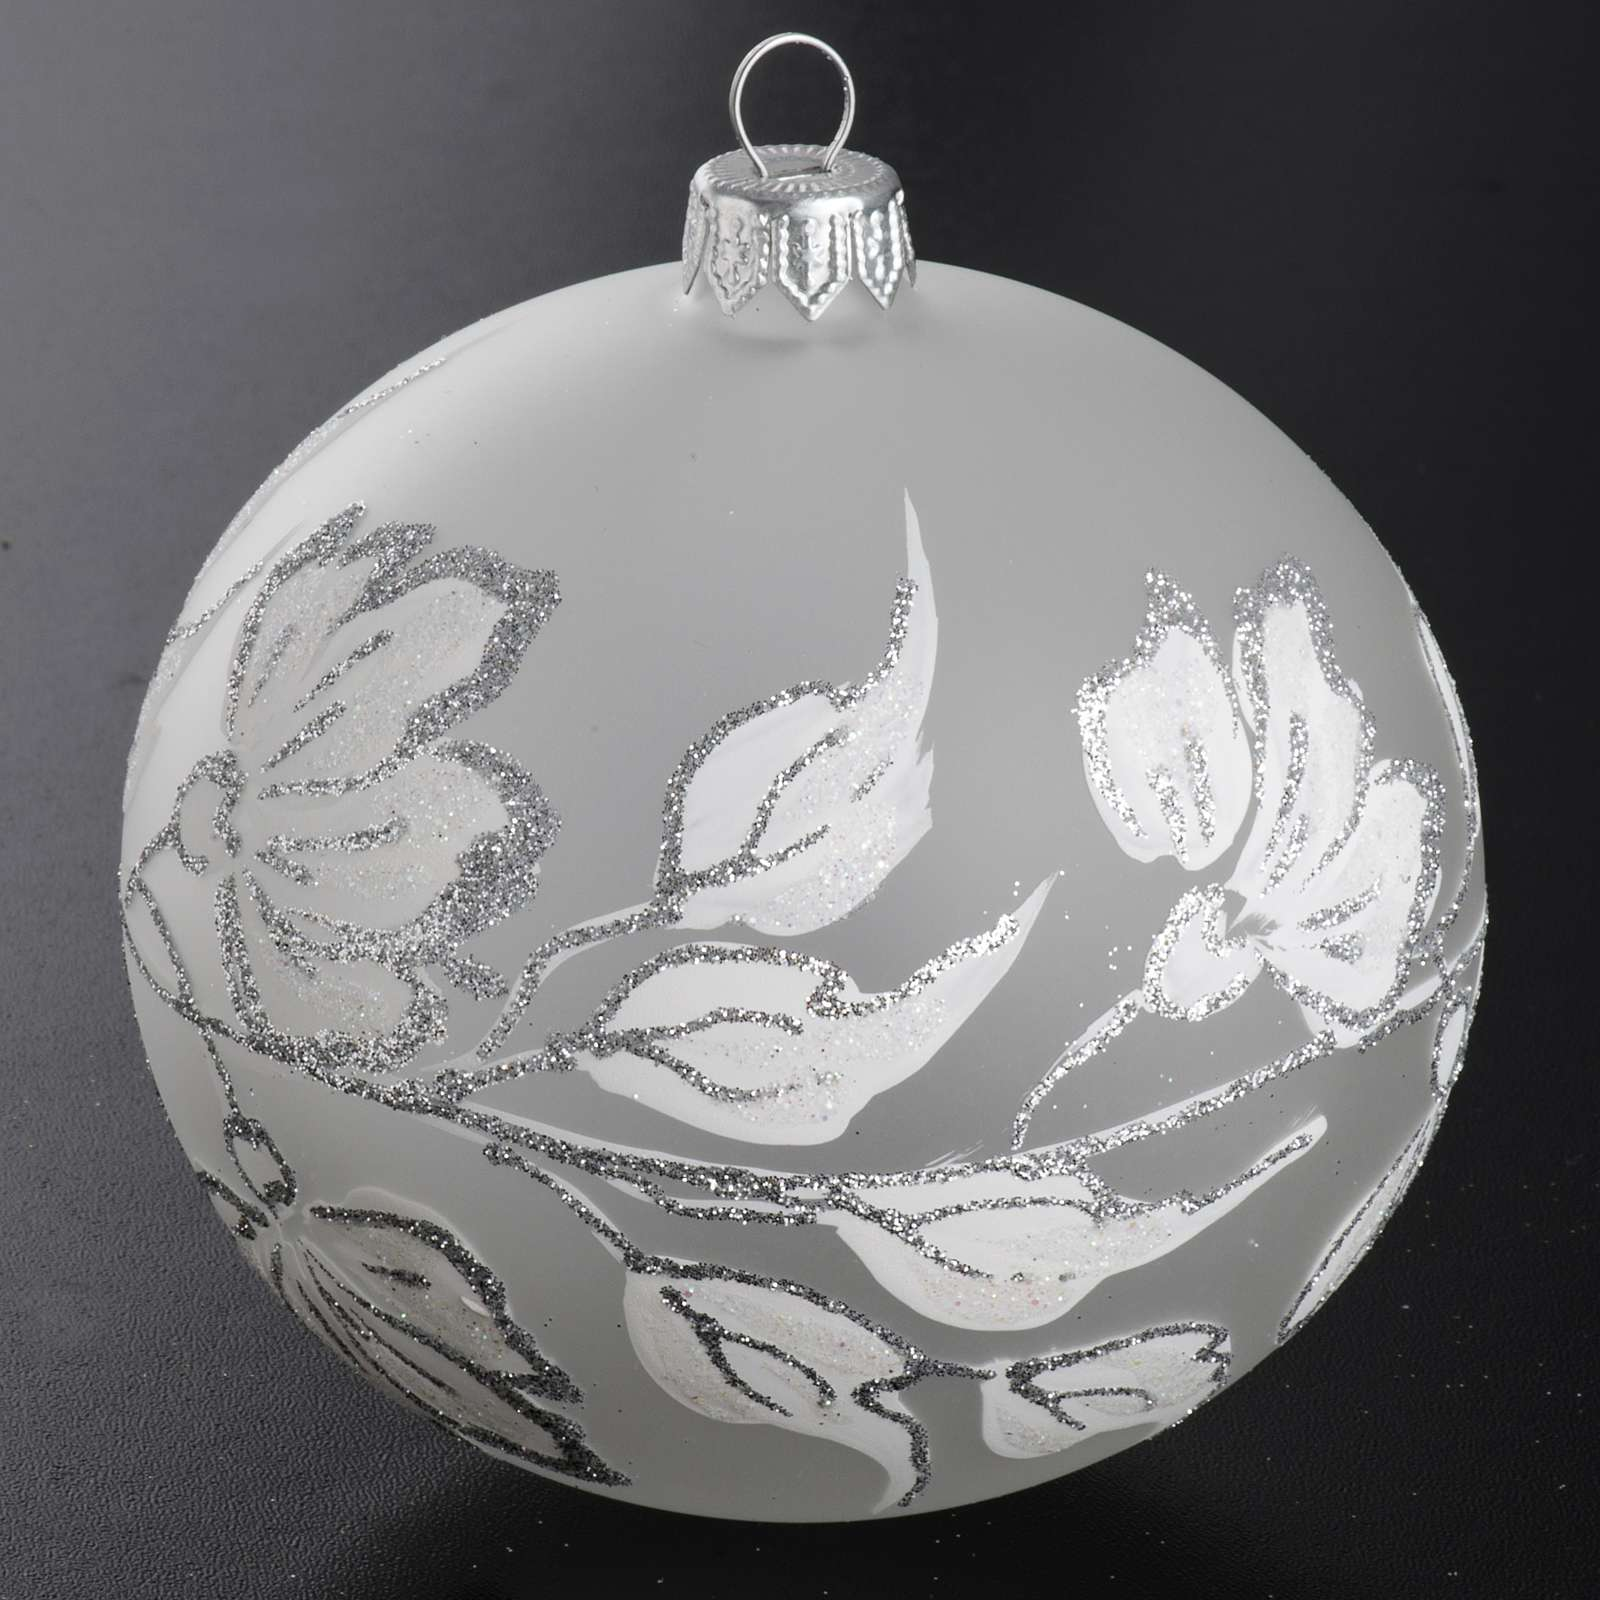 Bauble For Christmas Tree, Silver And White Blown Glass, 10Cm